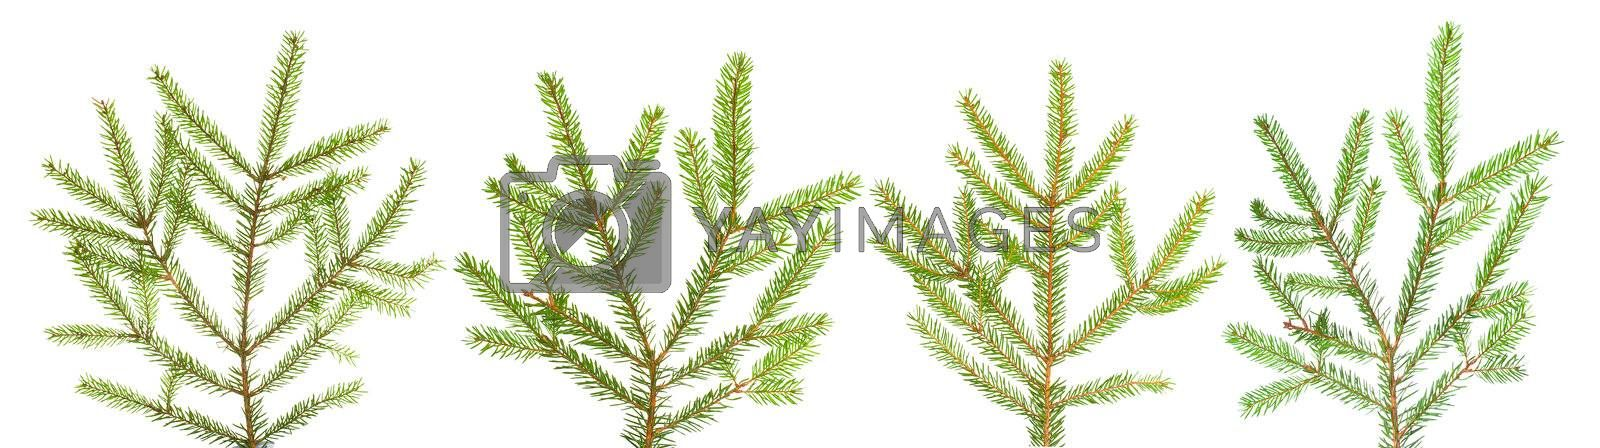 branches of fir-tree, isolated on white